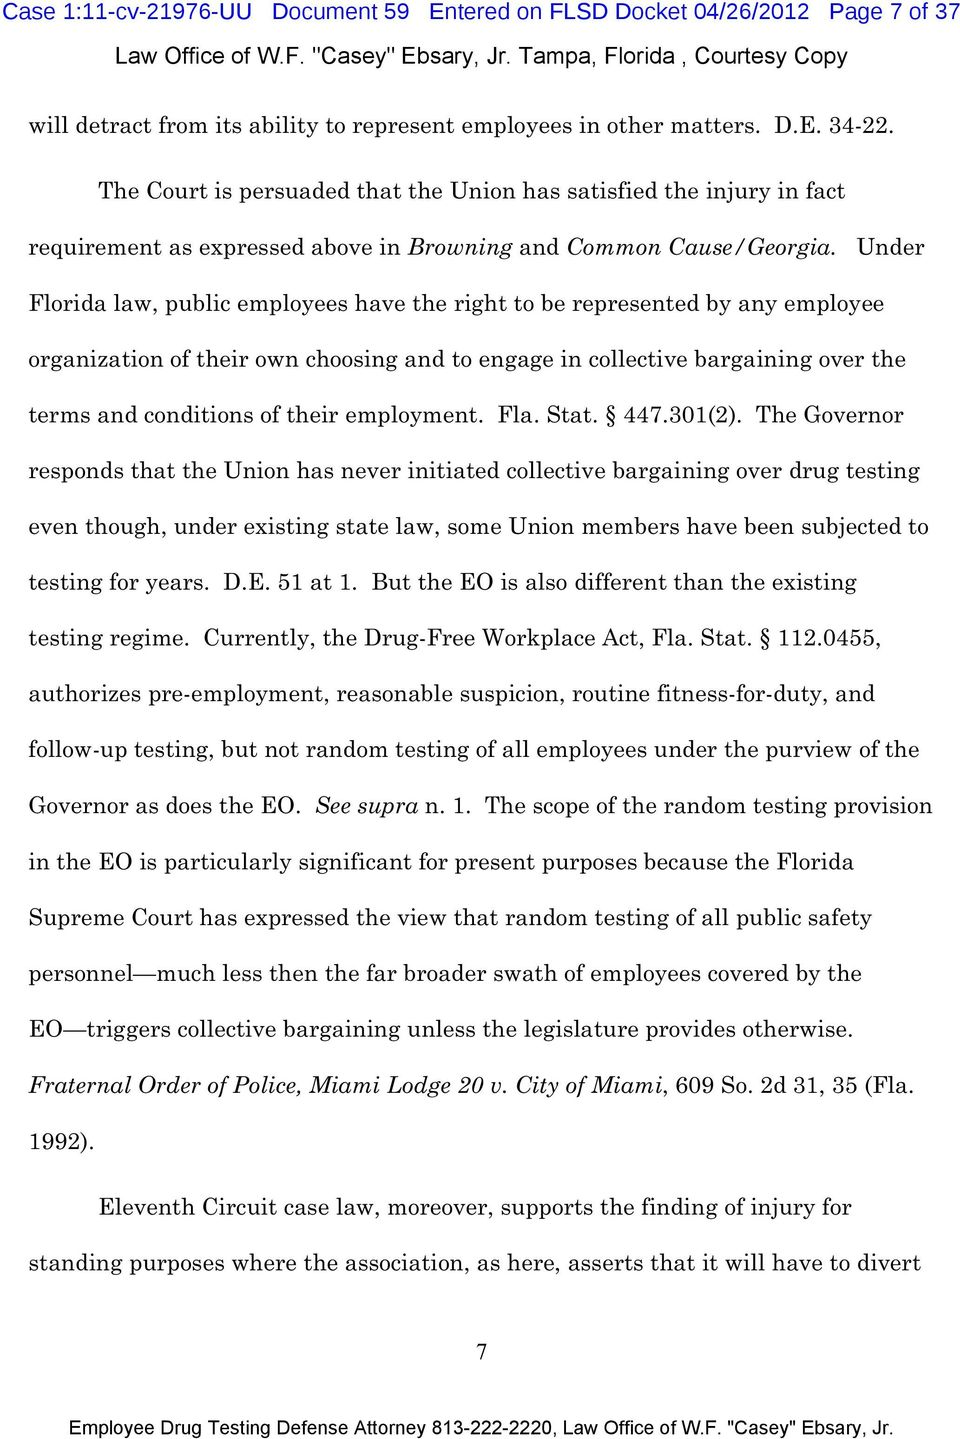 Under Florida law, public employees have the right to be represented by any employee organization of their own choosing and to engage in collective bargaining over the terms and conditions of their